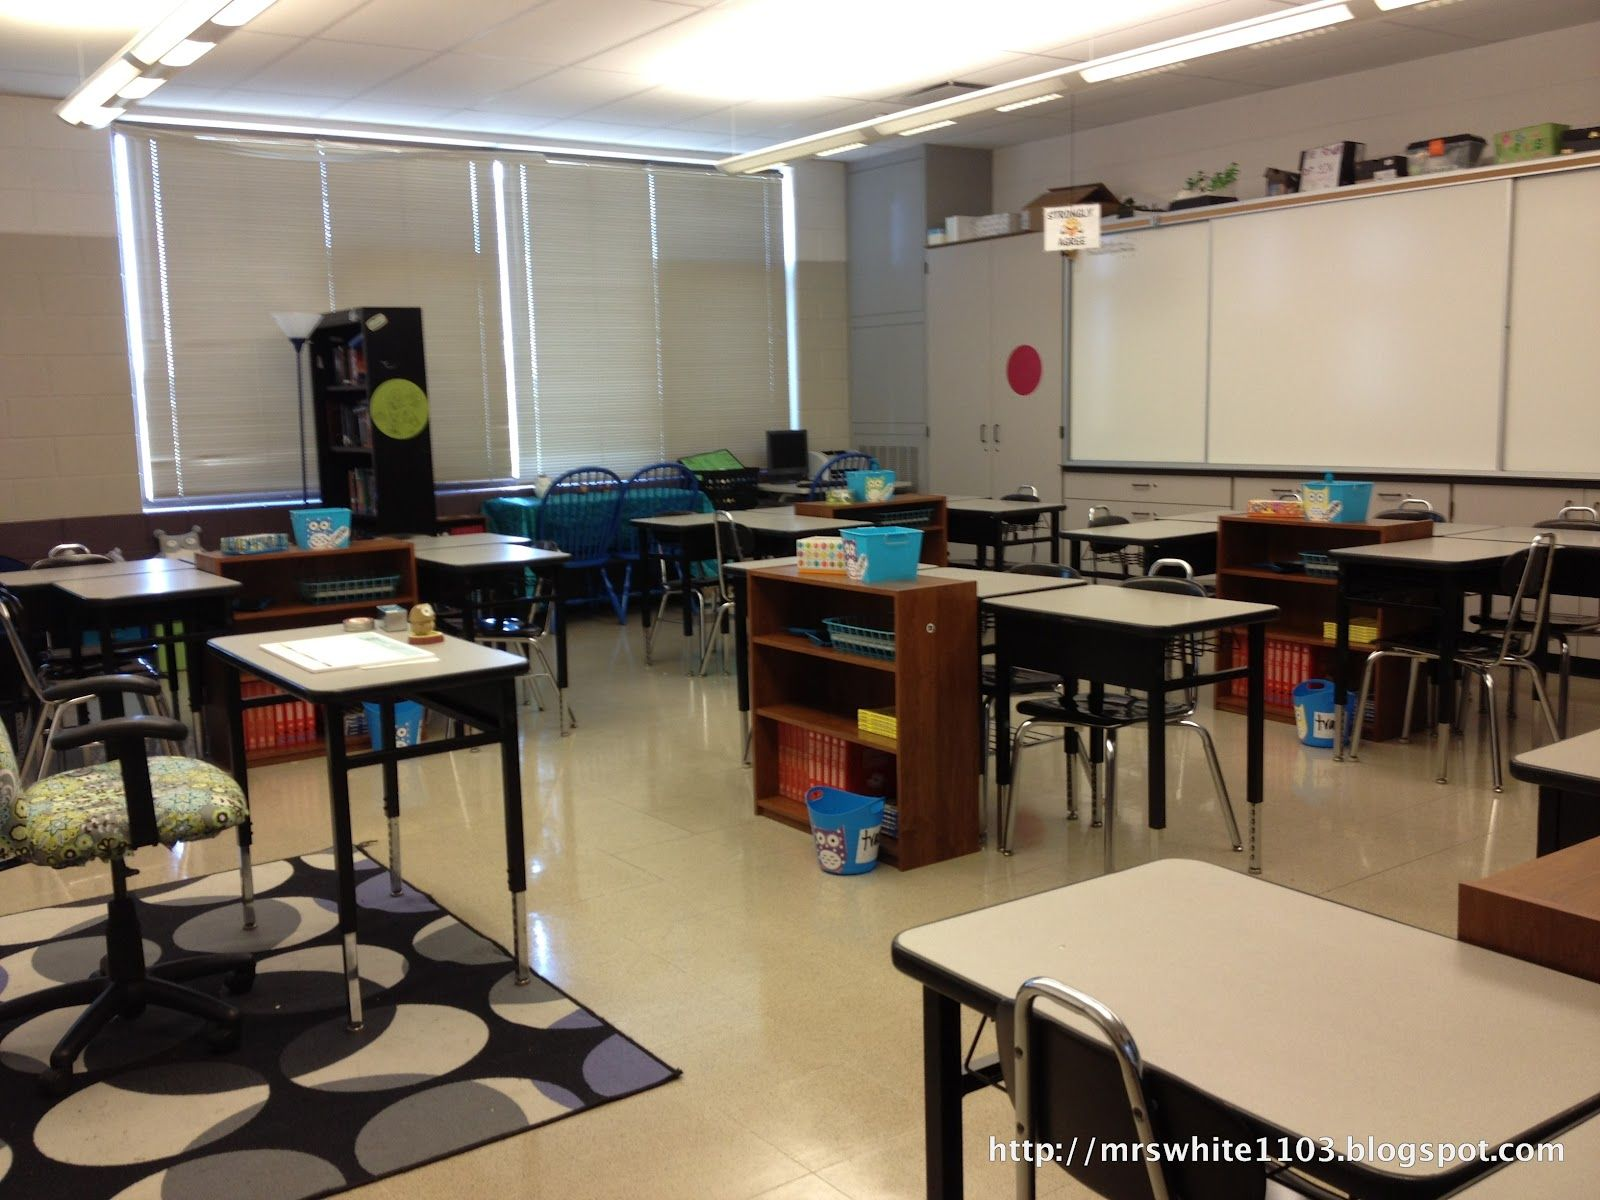 Classroom Decorating Themes Middle School ~ Middle school classroom decorating ideas imgkid